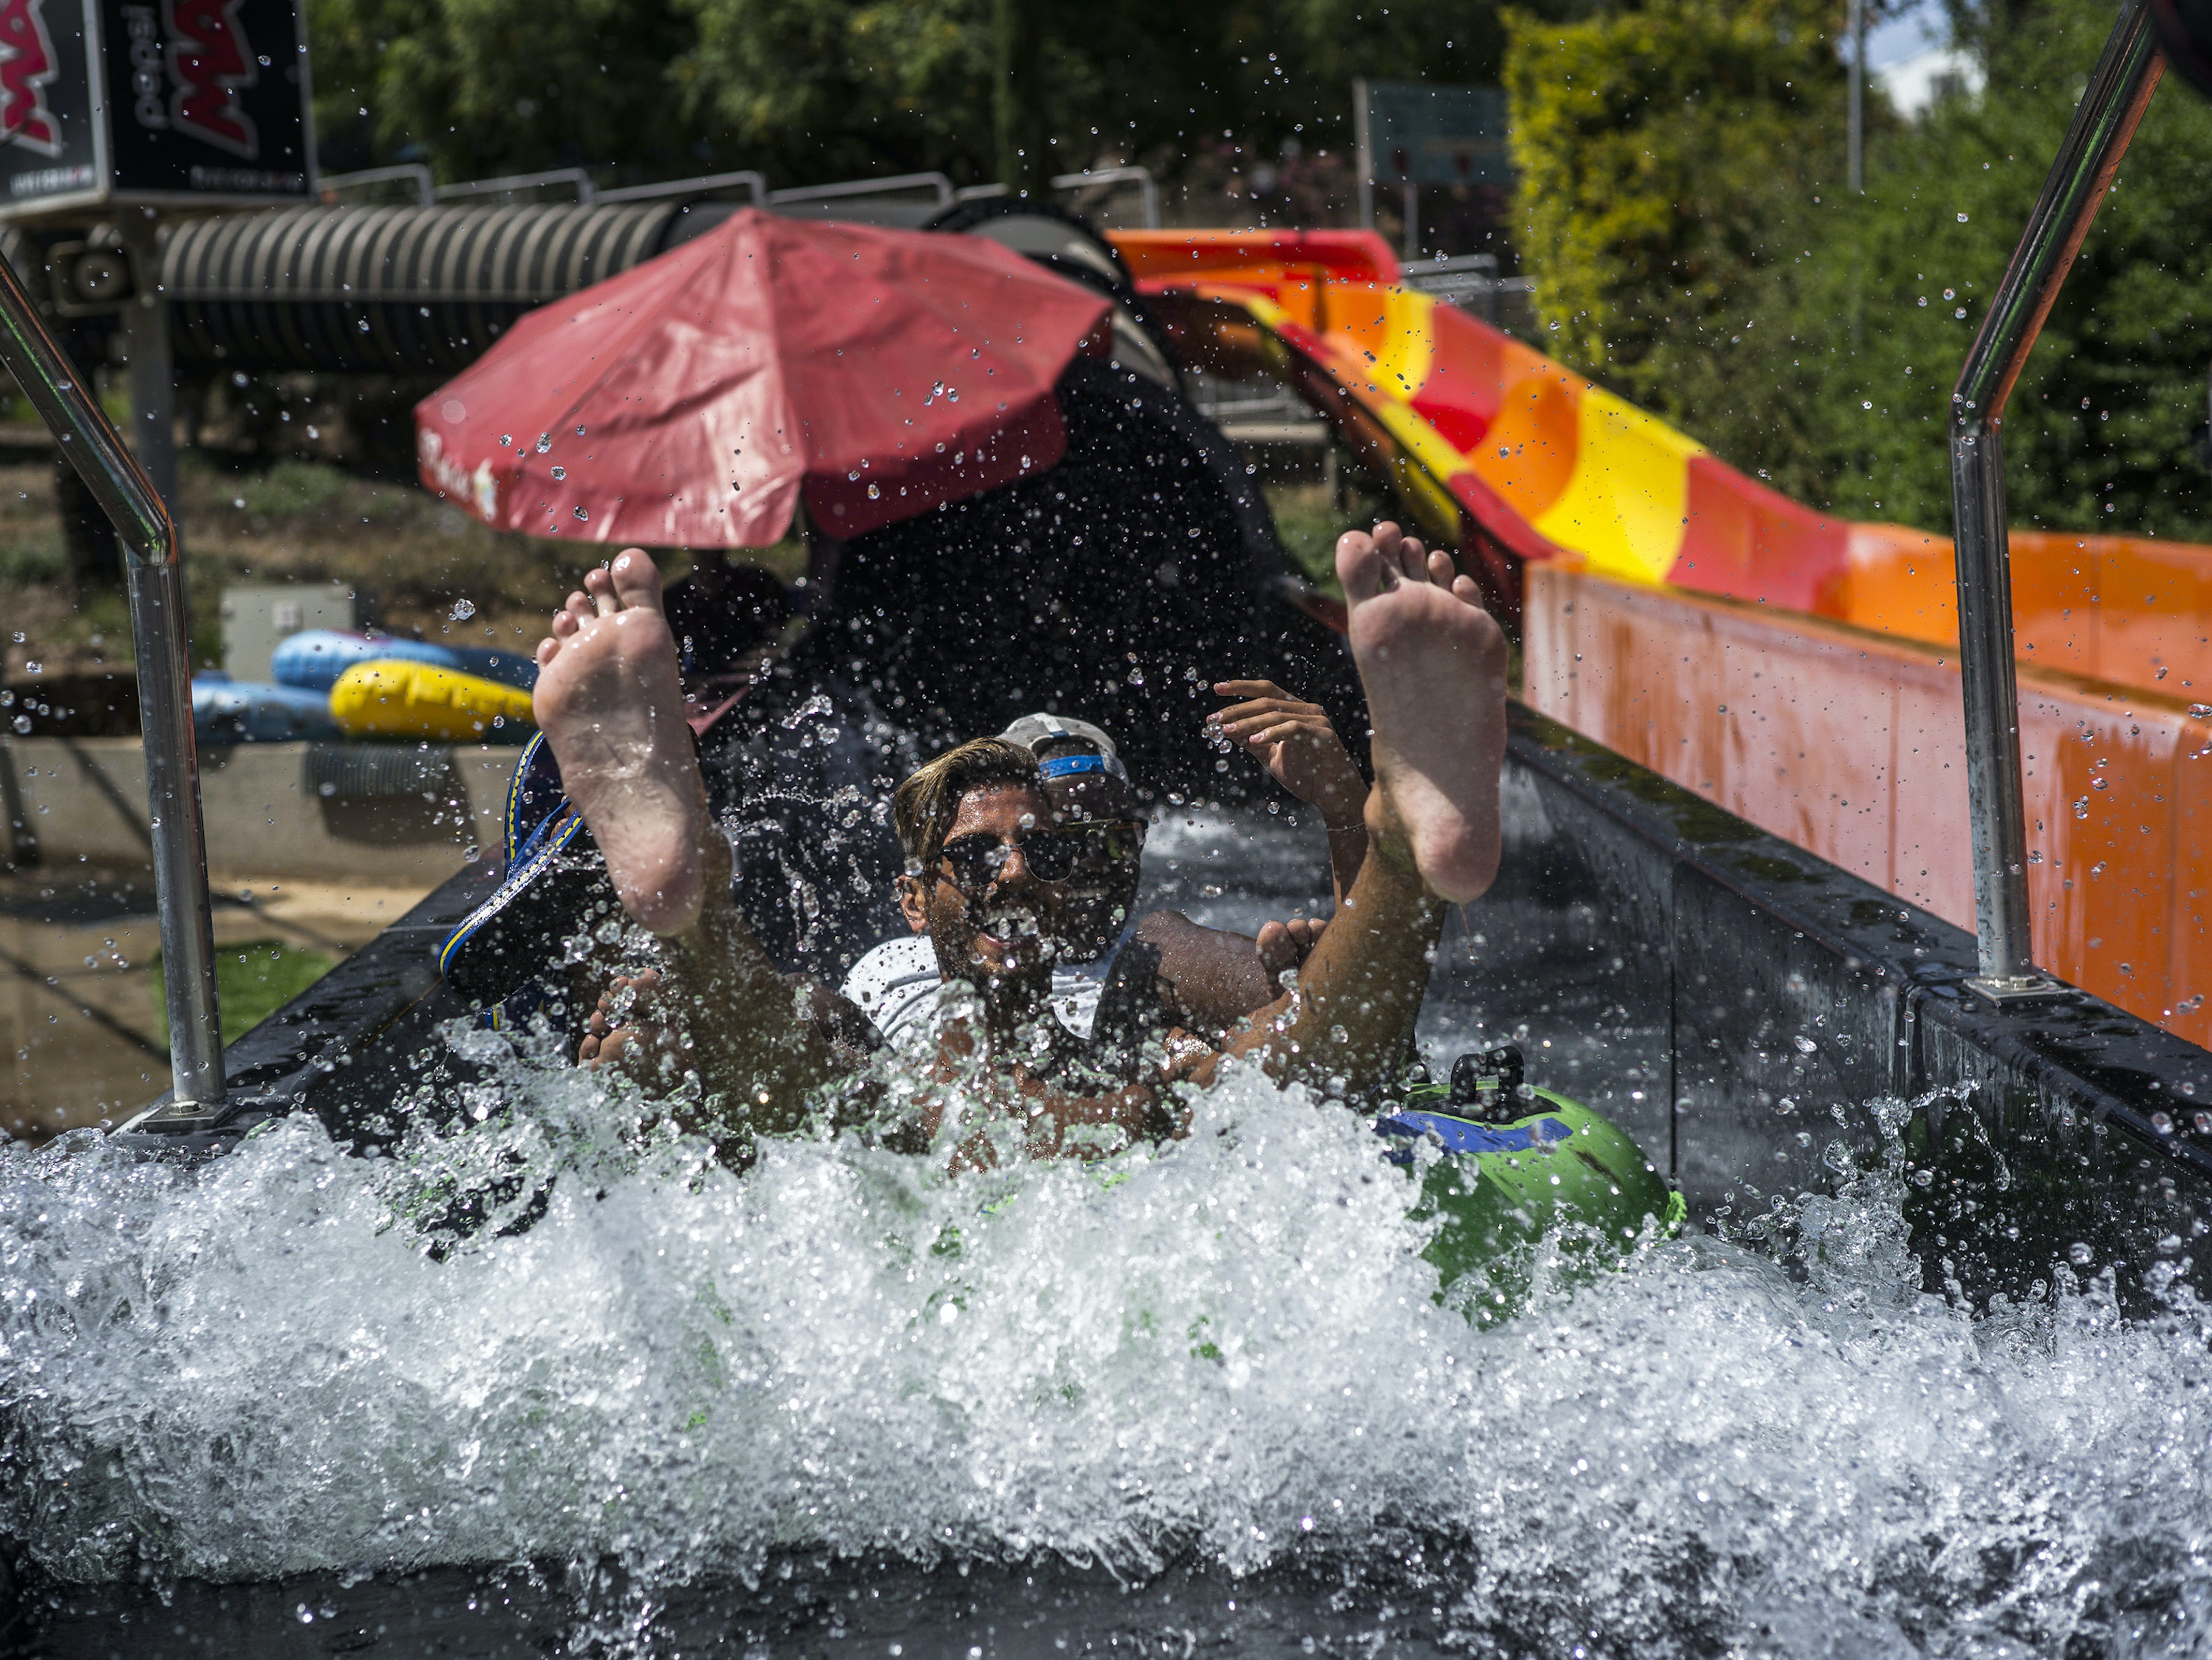 SHEFAYIM, ISRAEL - JUNE 02:  People enjoy the water slides during a Water Park party on June 2, 2016 in Shefayim, Israel. Ahead of the annual Gay pride parade in Tel Aviv taking place on June 3, LGBT tourists from across the world visit Israel for the week in a build-up to Tel Aviv Pride, one of the Pride capitols of the world.  (Photo by Ilia Yefimovich/Getty Images)